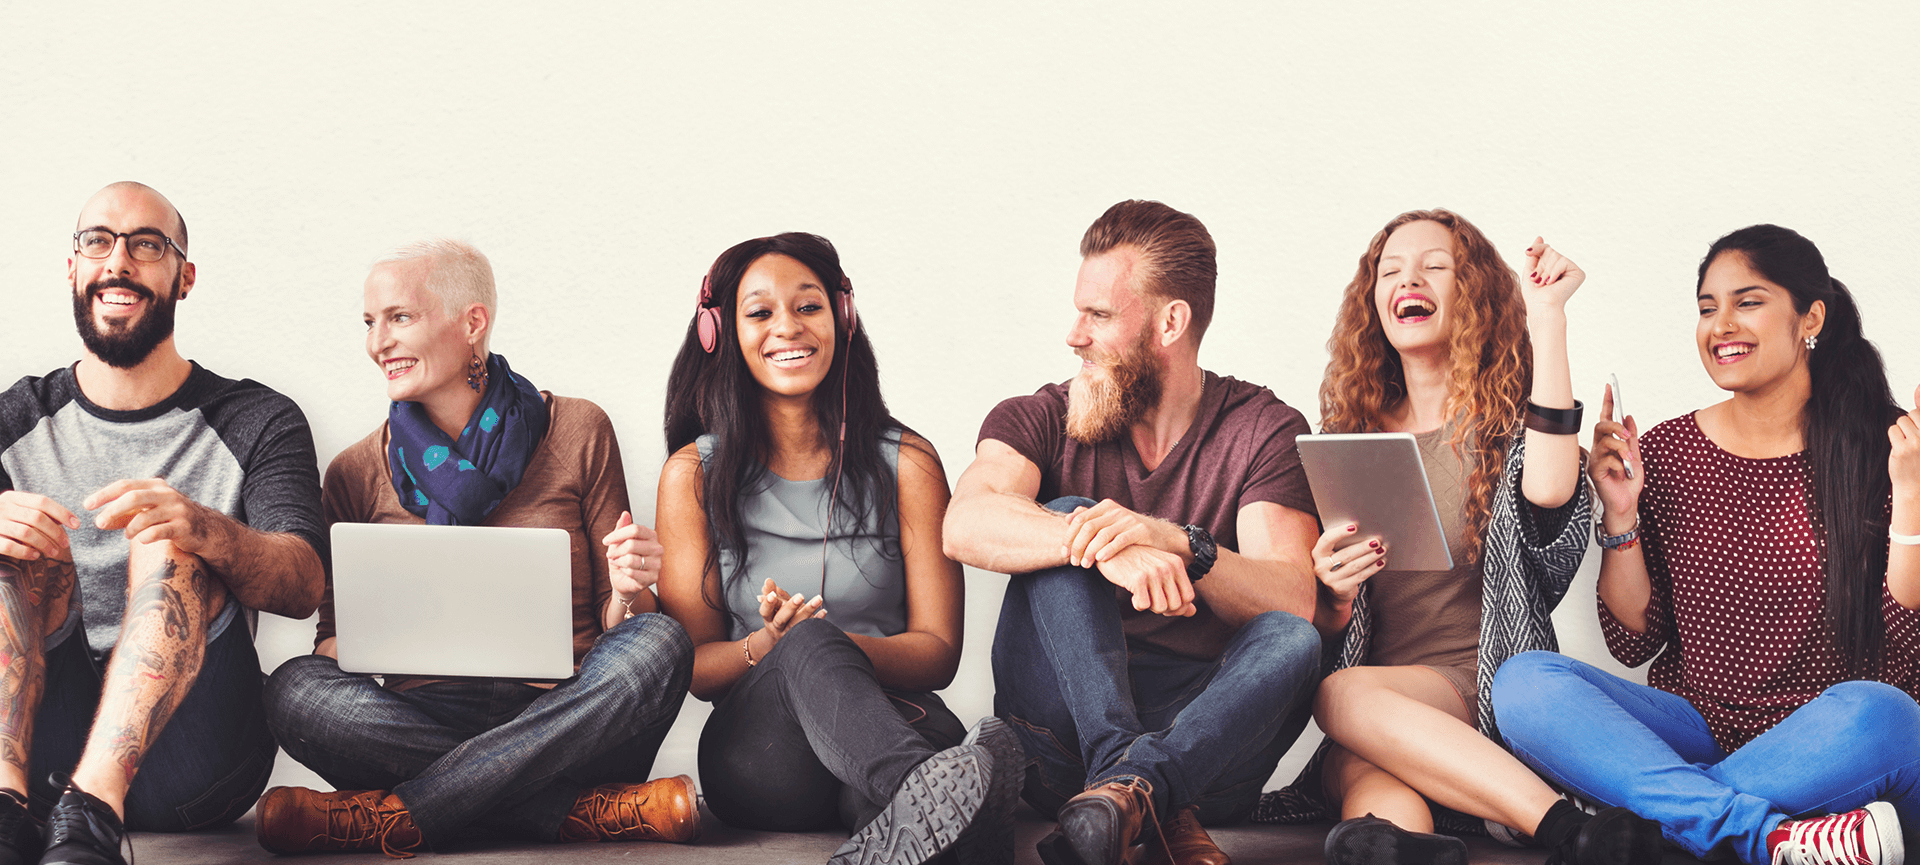 Group of people sitting using technology